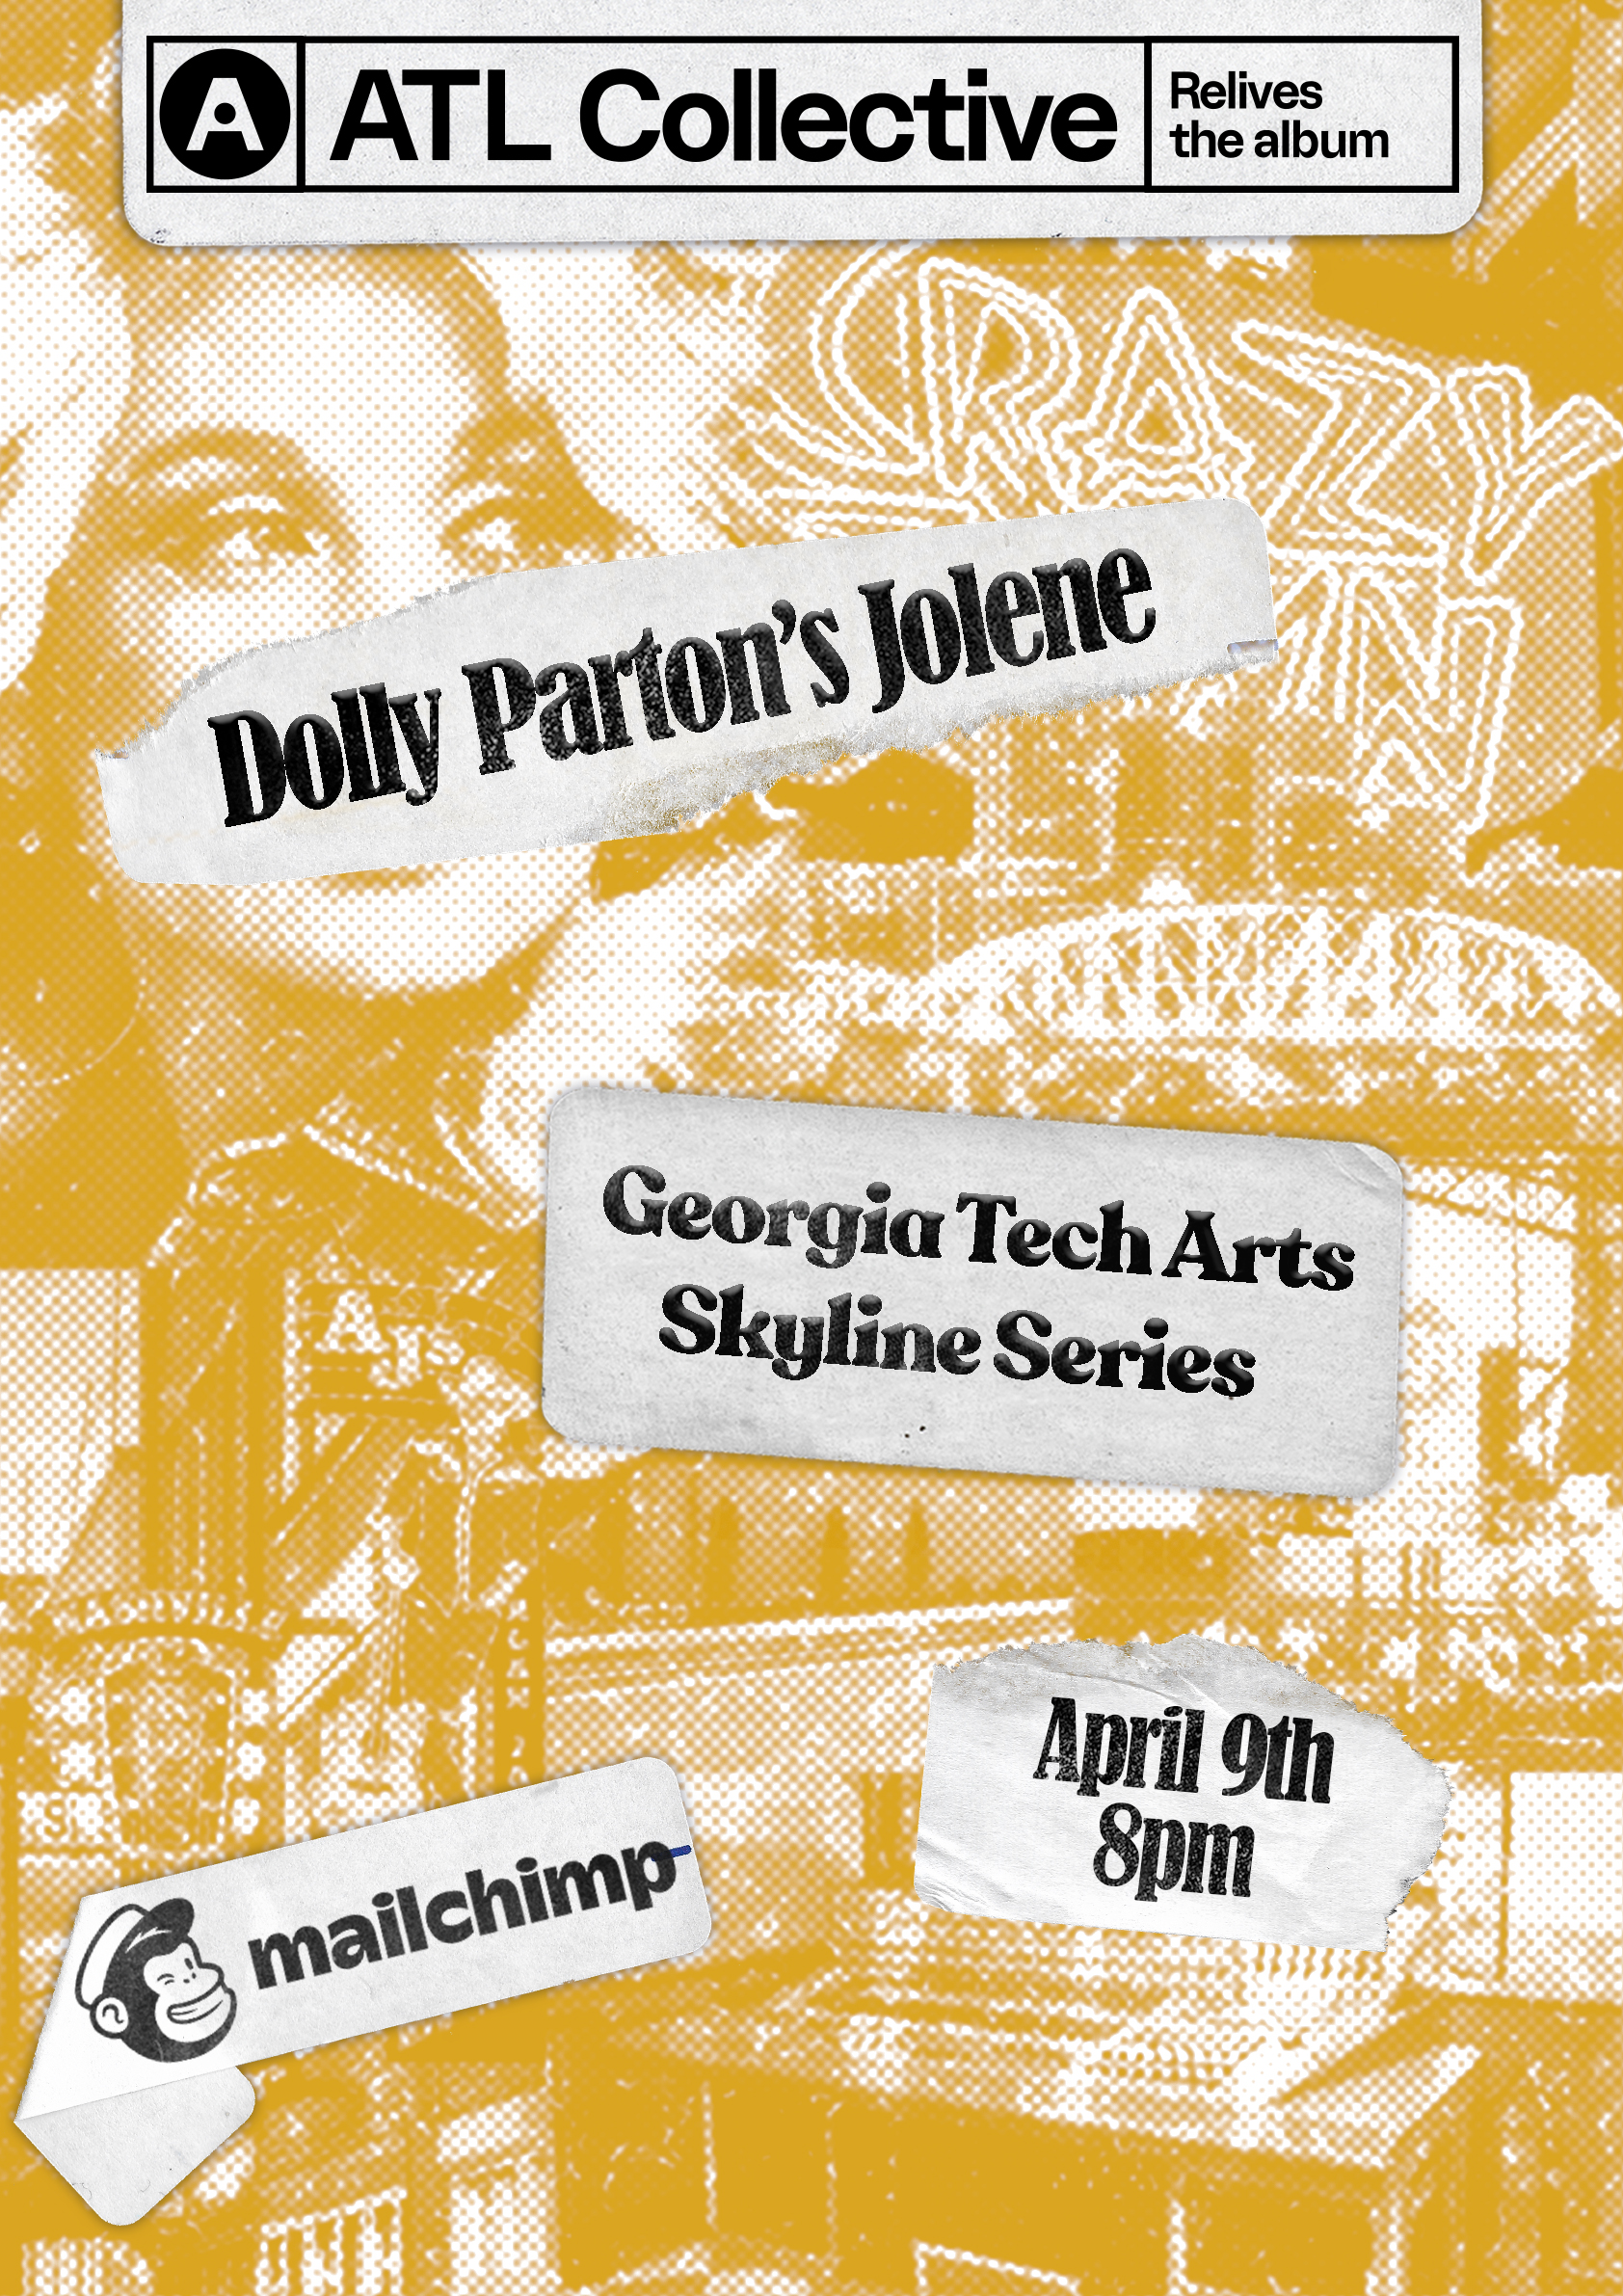 Text reads: ATL Collective Relives the album. Dolly Parton's Jolen. Georgia Tech Arts Skyline Series. April 9 8pm. Mailchimp. The text is in five separate areas, designed to look like it's been layered over the album cover of Dolly Parton's Jolene.